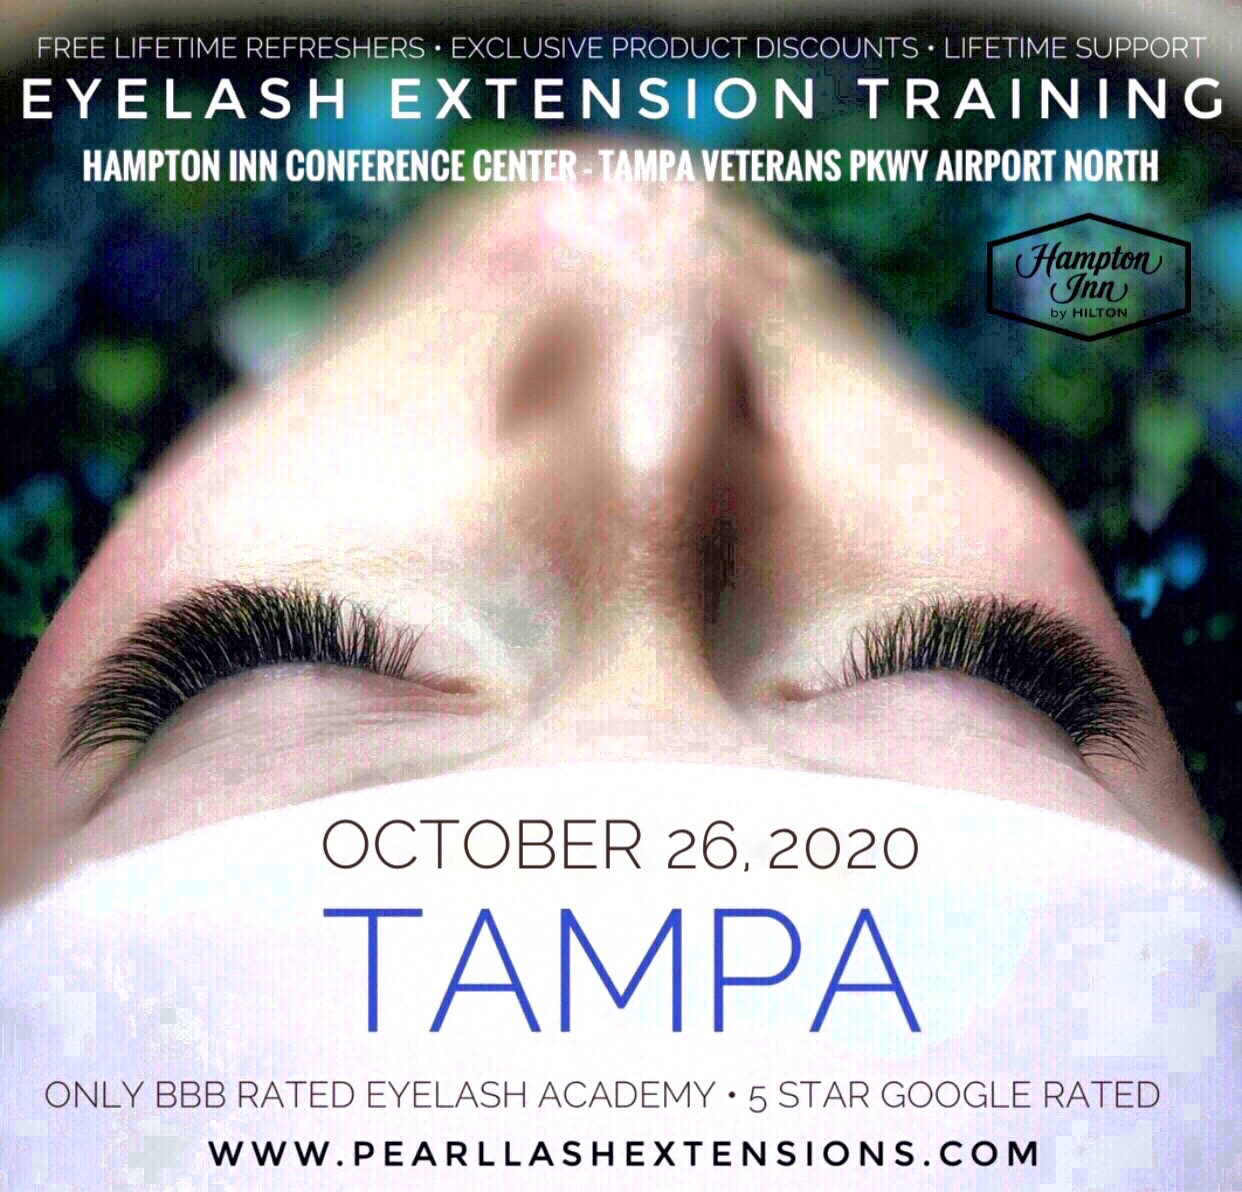 Eyelash Extension Training Tampa by Pearl Lash